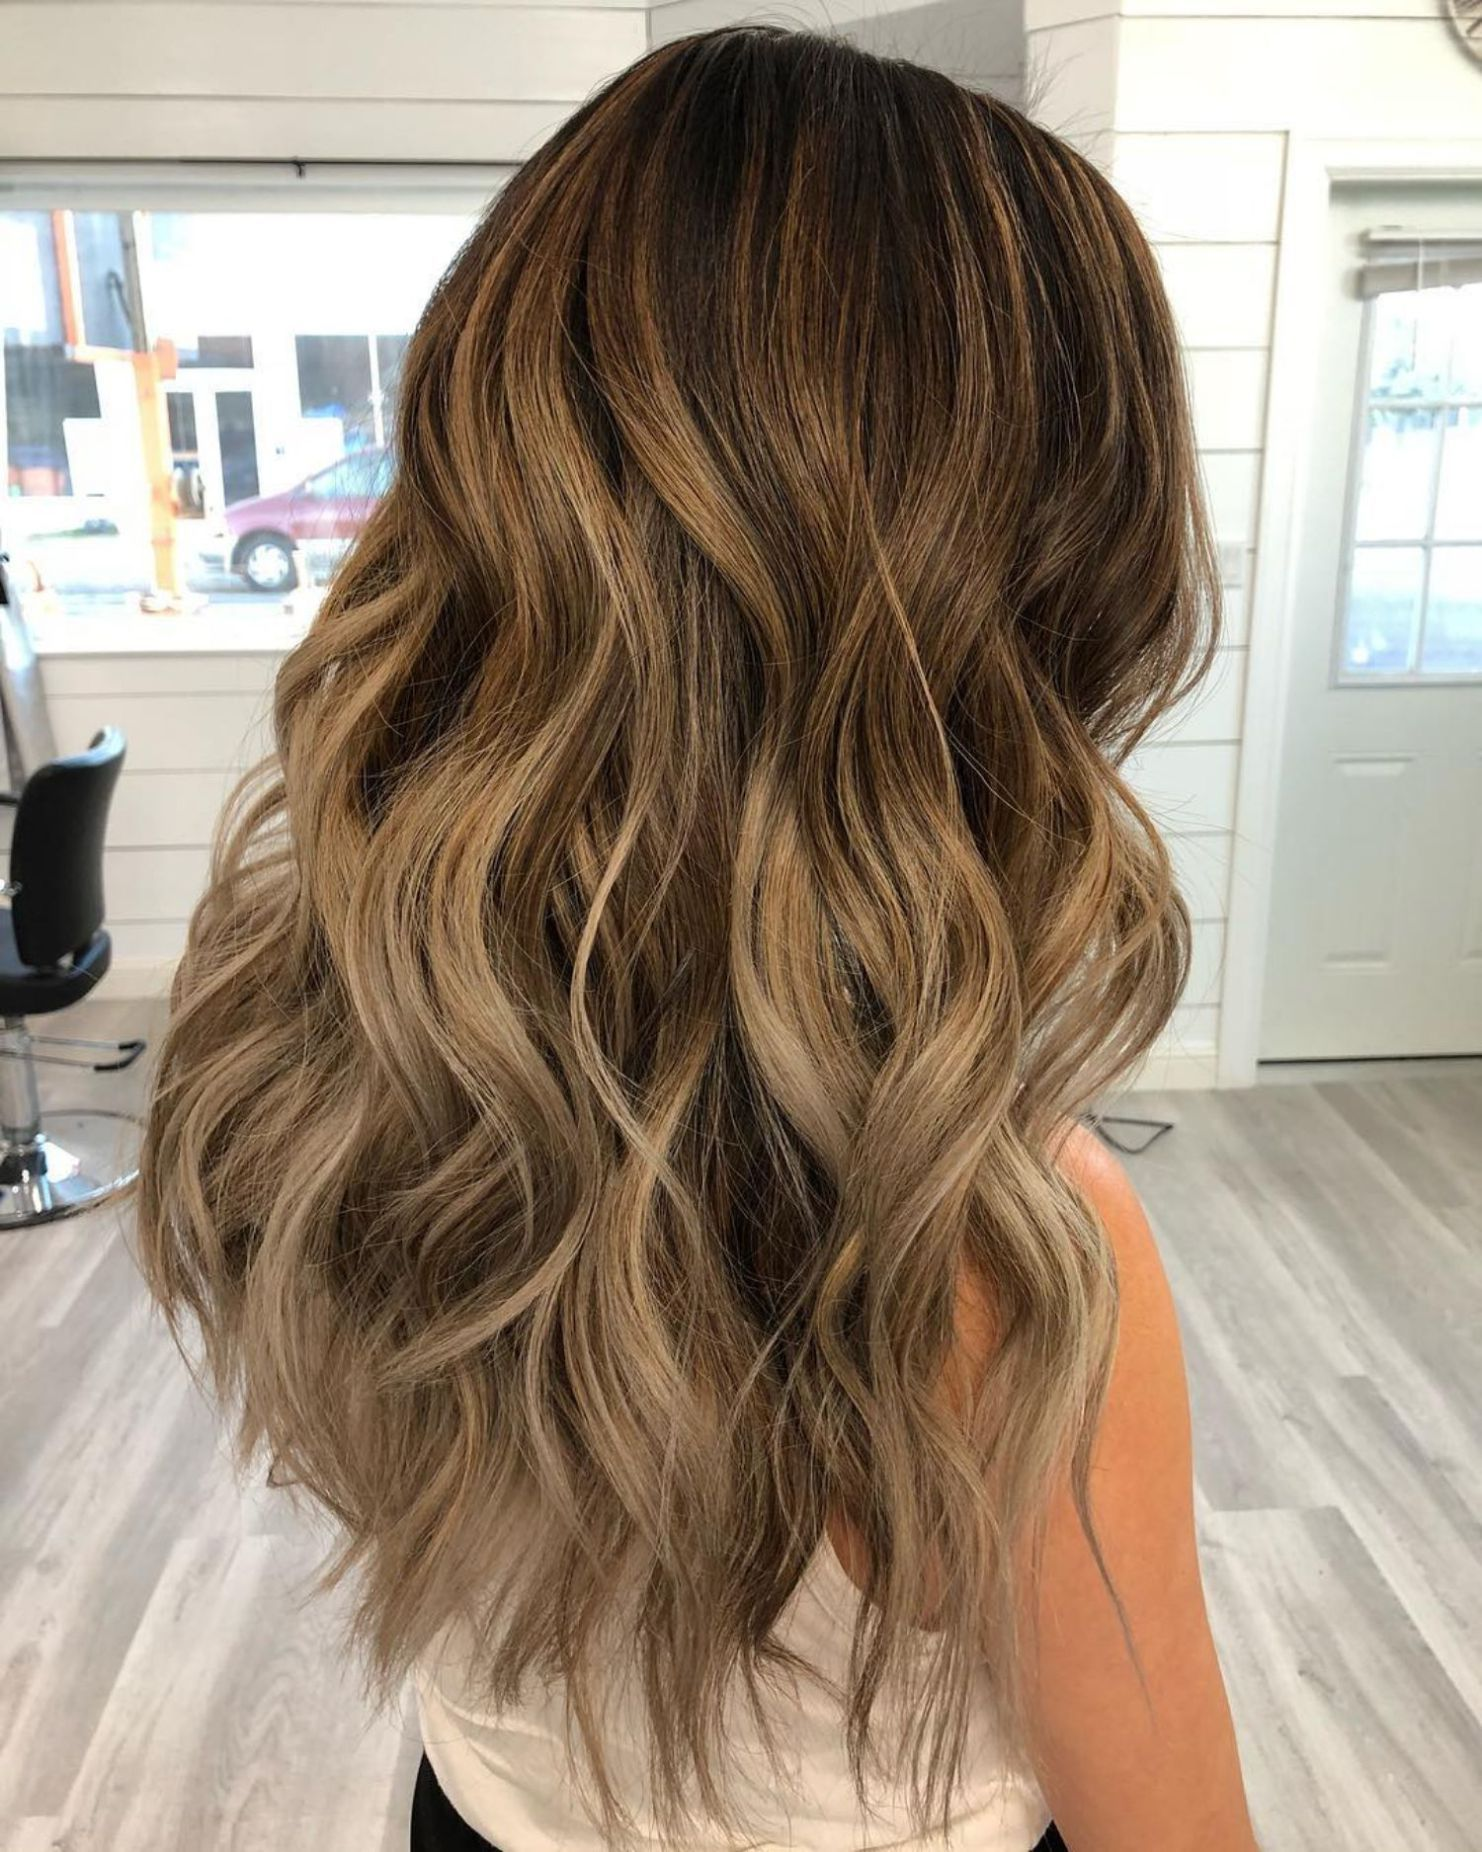 60 Most Magnetizing Hairstyles For Thick Wavy Hair Thick Wavy Hair Curling Thick Hair Thick Hair Styles